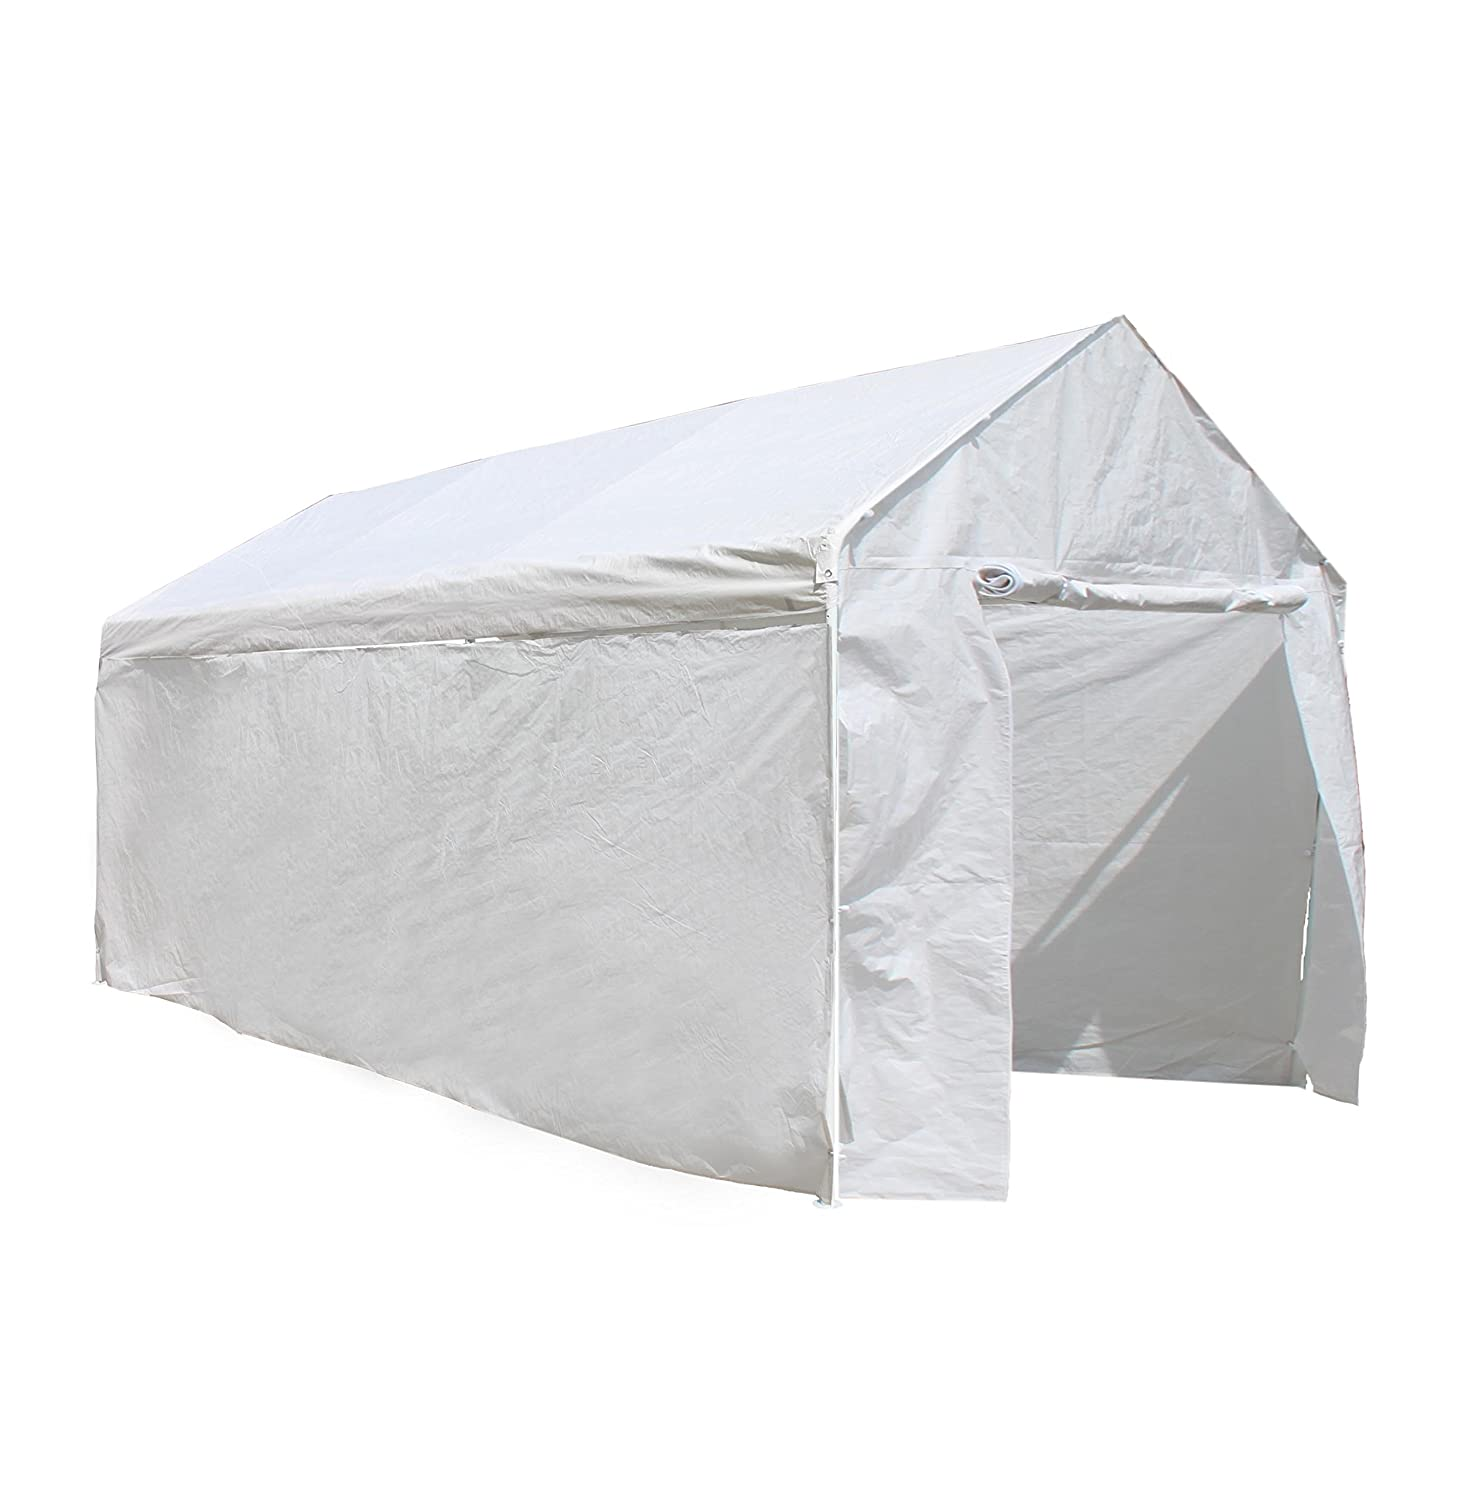 ALEKO CP1020NS 10 X 20 Heavy Duty Steel Frame Carport Kit, Party Tent with Polyethylene Removable Walls in White CP1020NSKIT